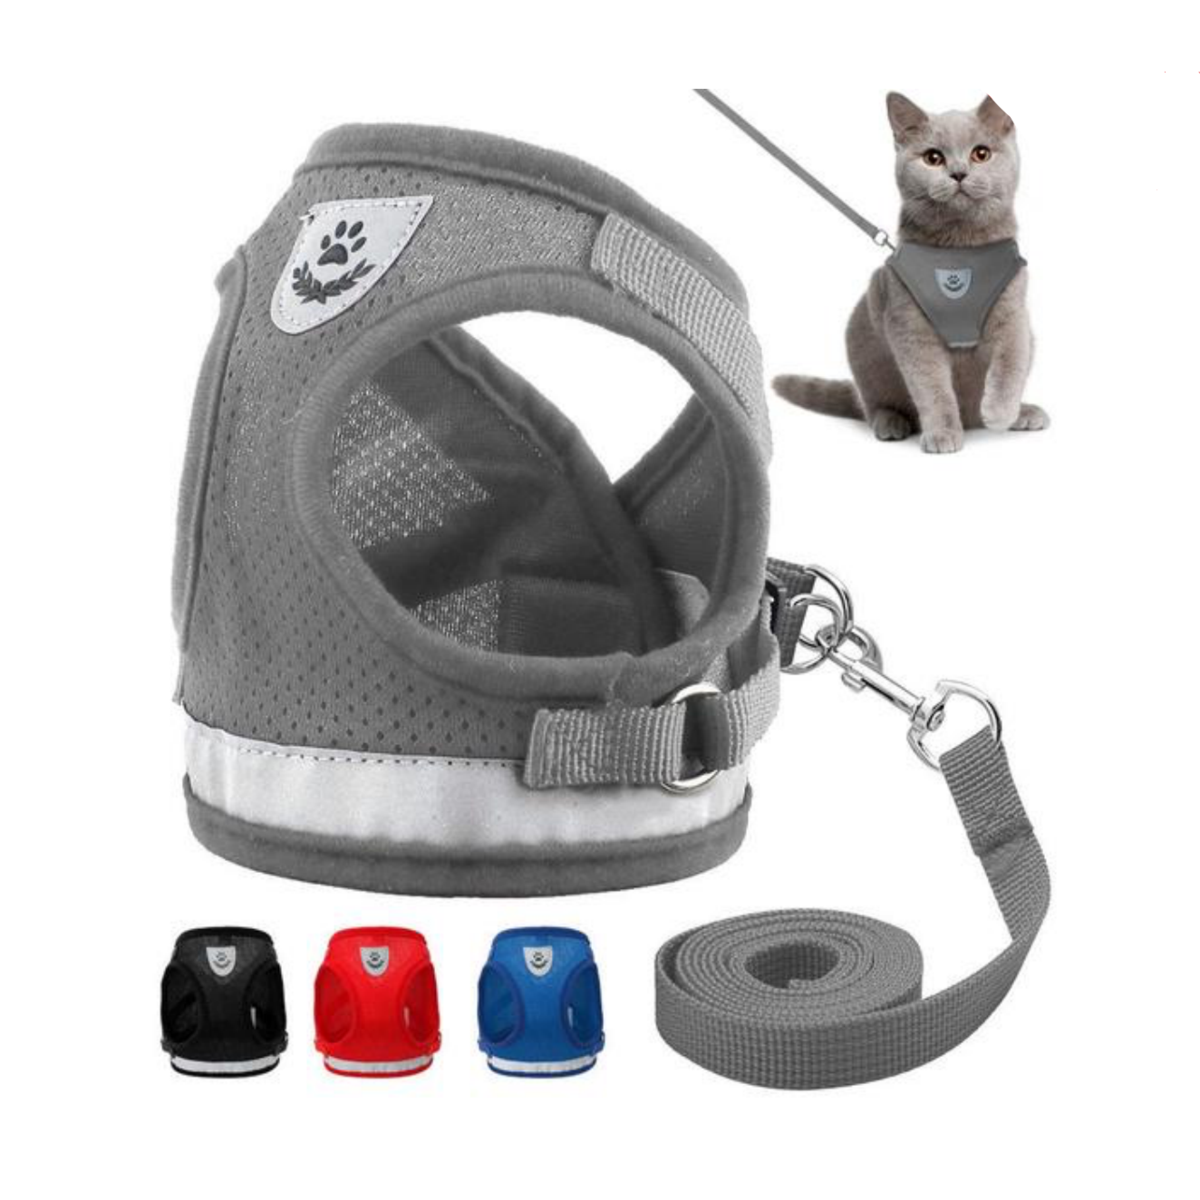 Material Meshcolors Red Blue Blackfeature Reflectivesizes S M L Xl Small Dog Jacket Walking Harness Kitten Clothes